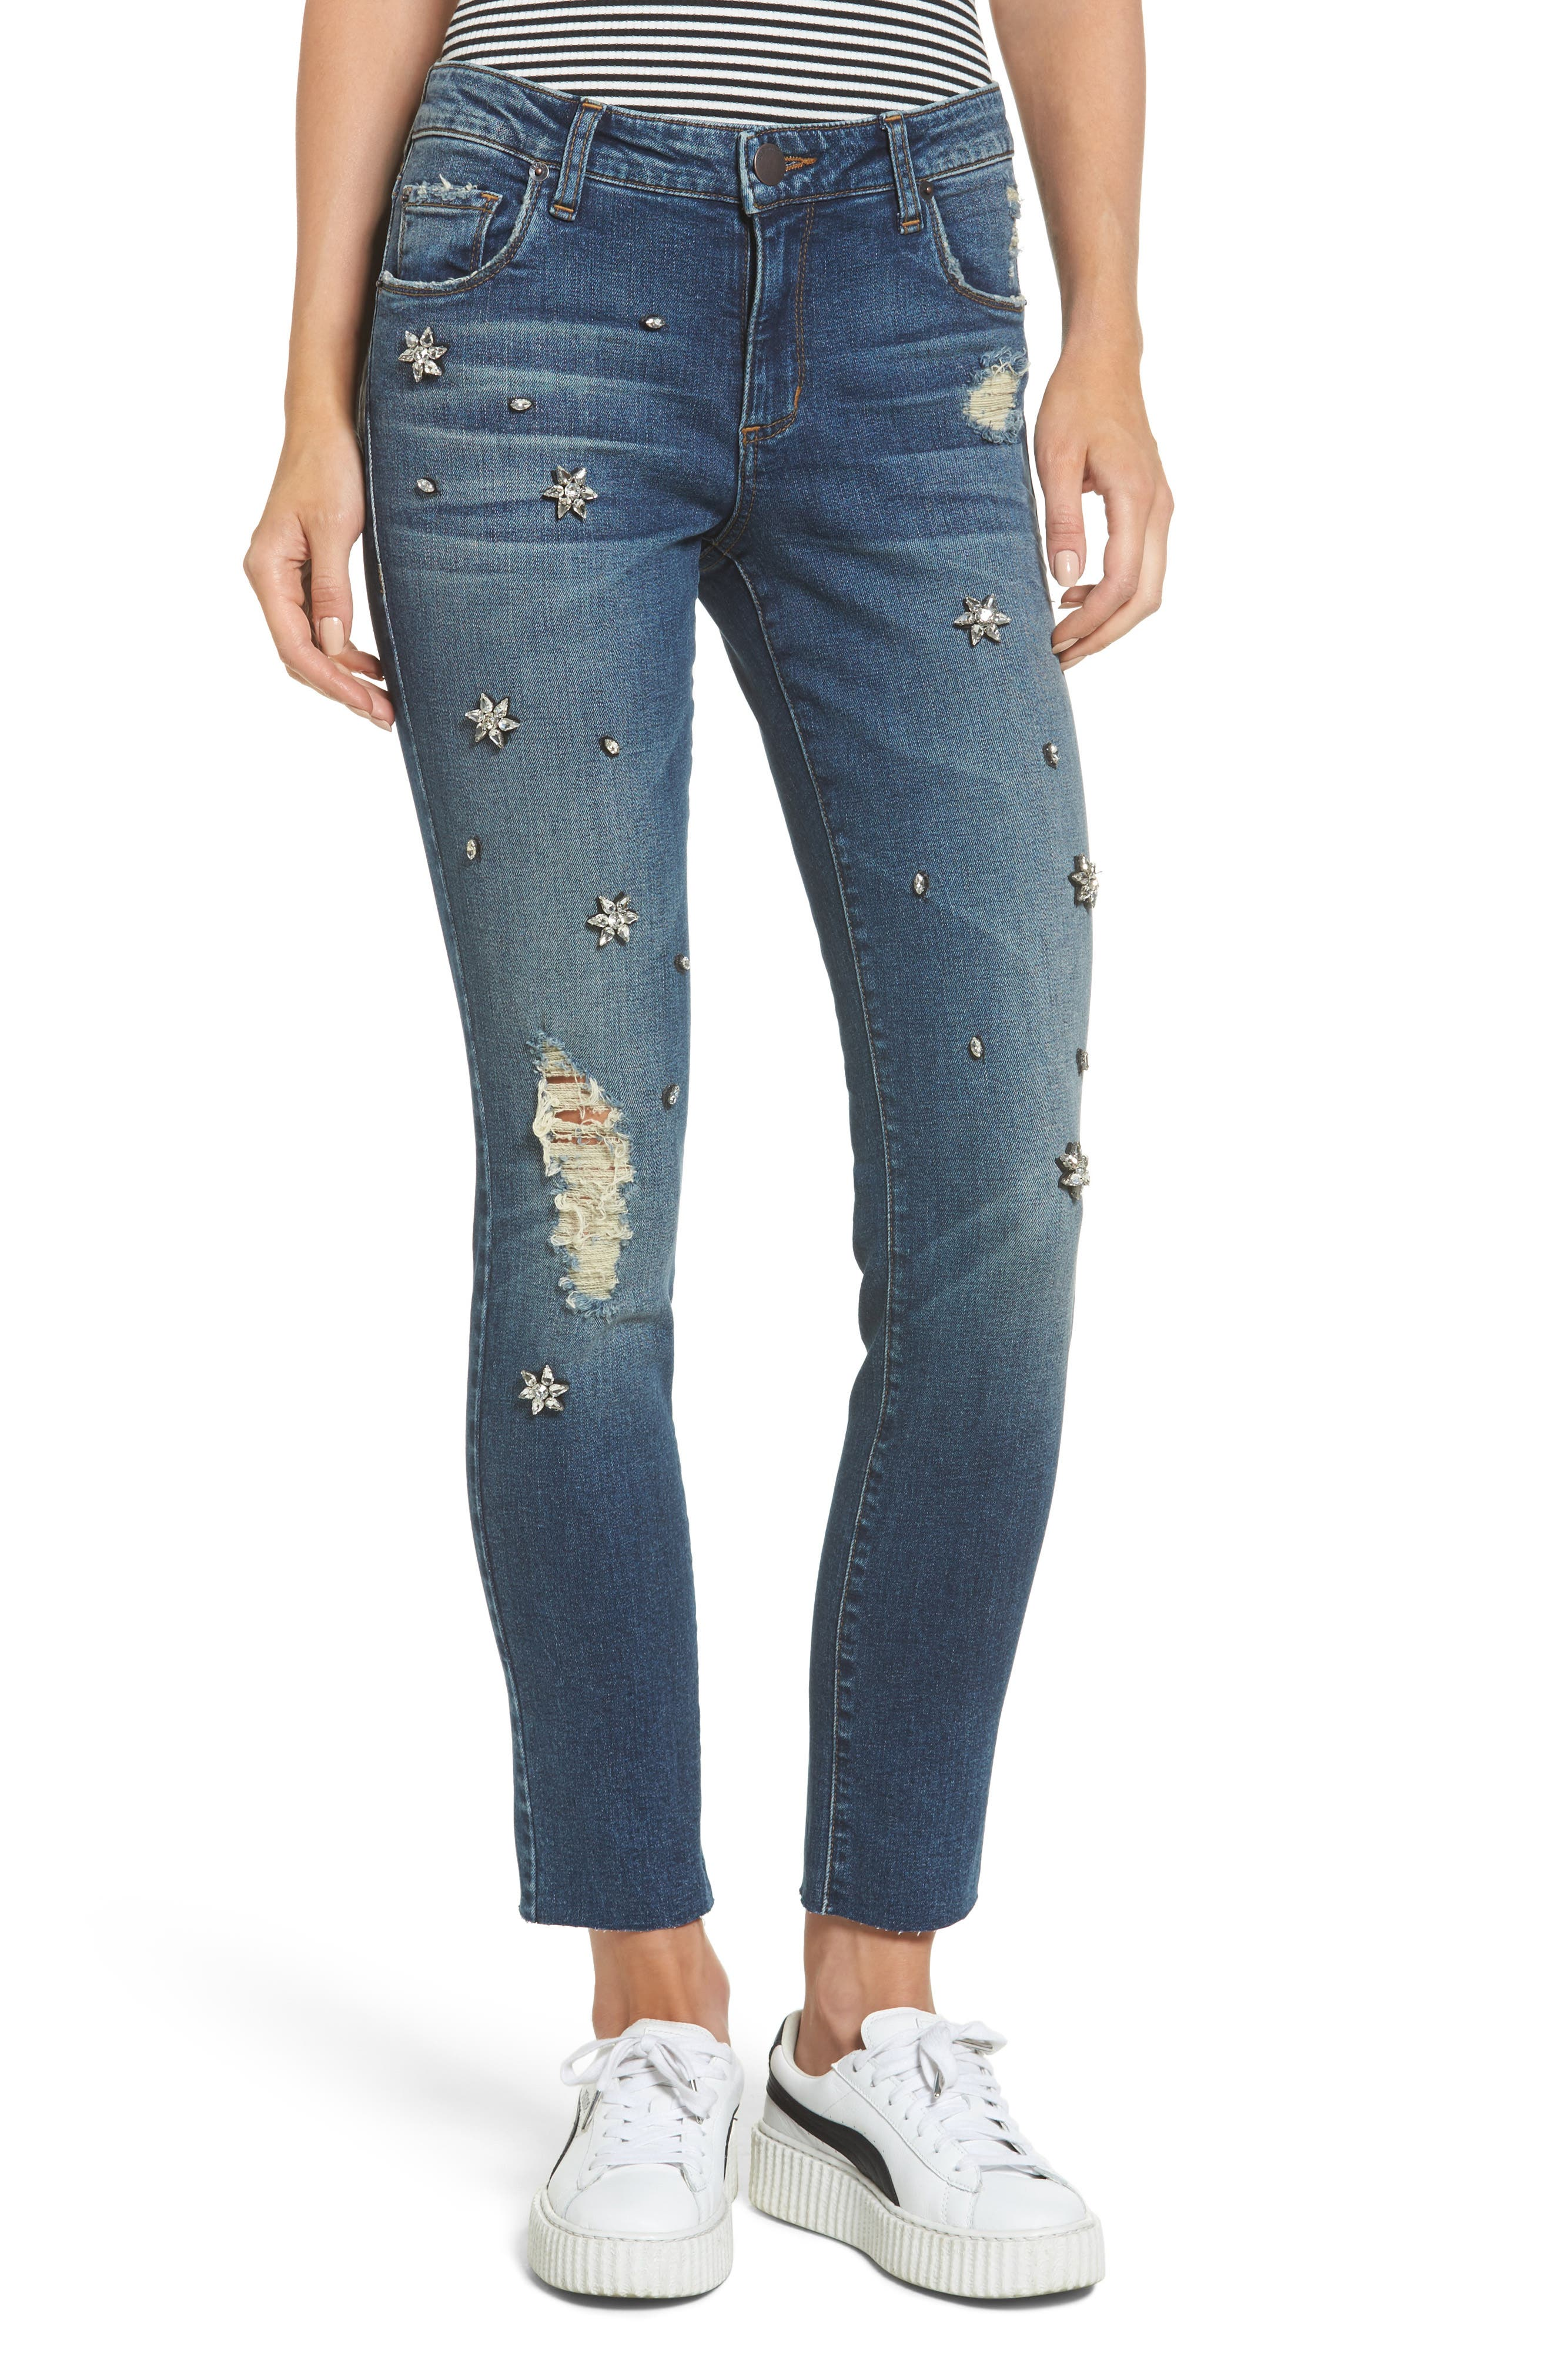 Taylor Jeweled Crop Straight Leg Jeans,                             Main thumbnail 1, color,                             East River View